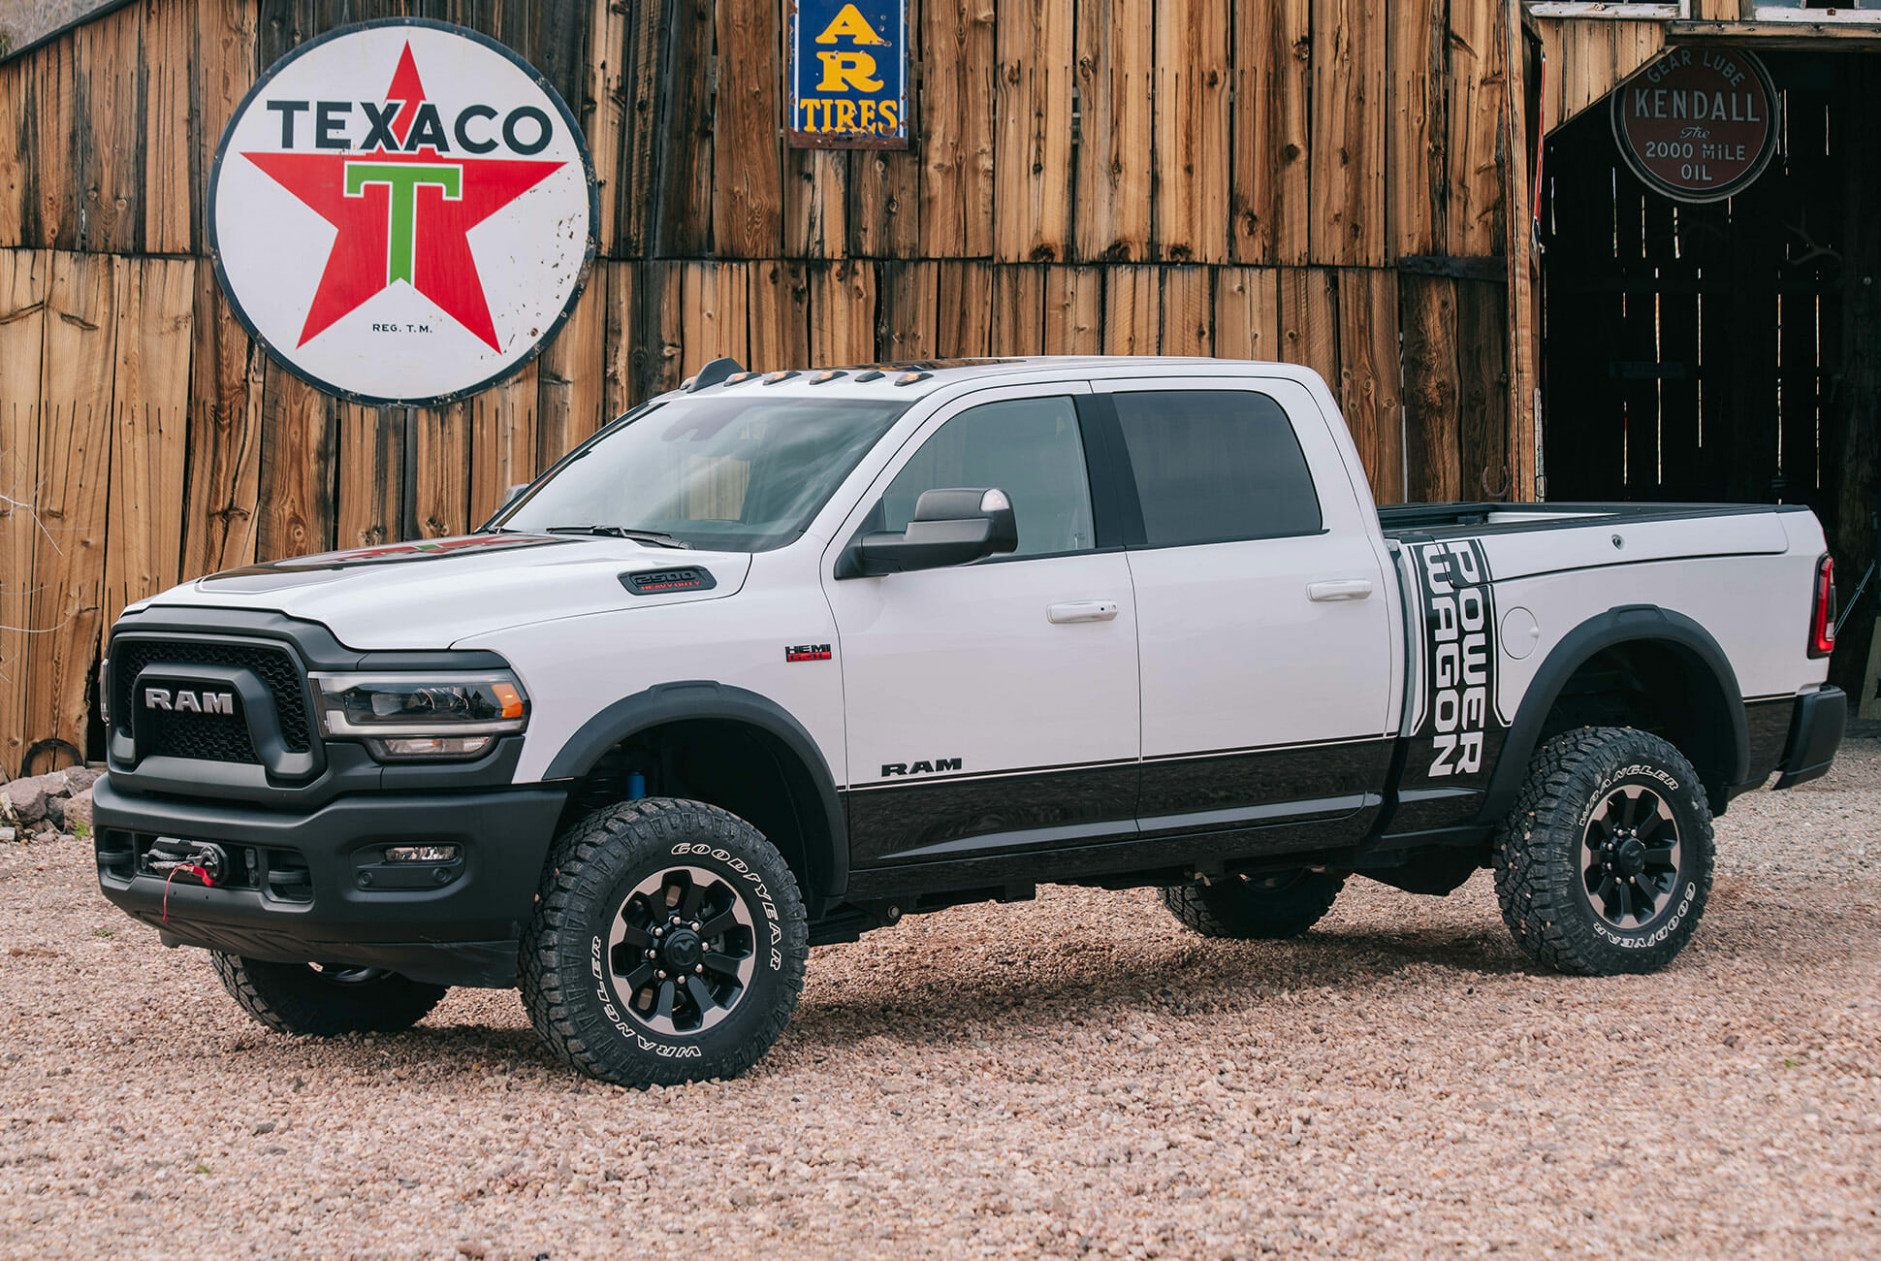 The 8 Ram Power Wagon Is the Most Capable Pickup You Can Buy ..